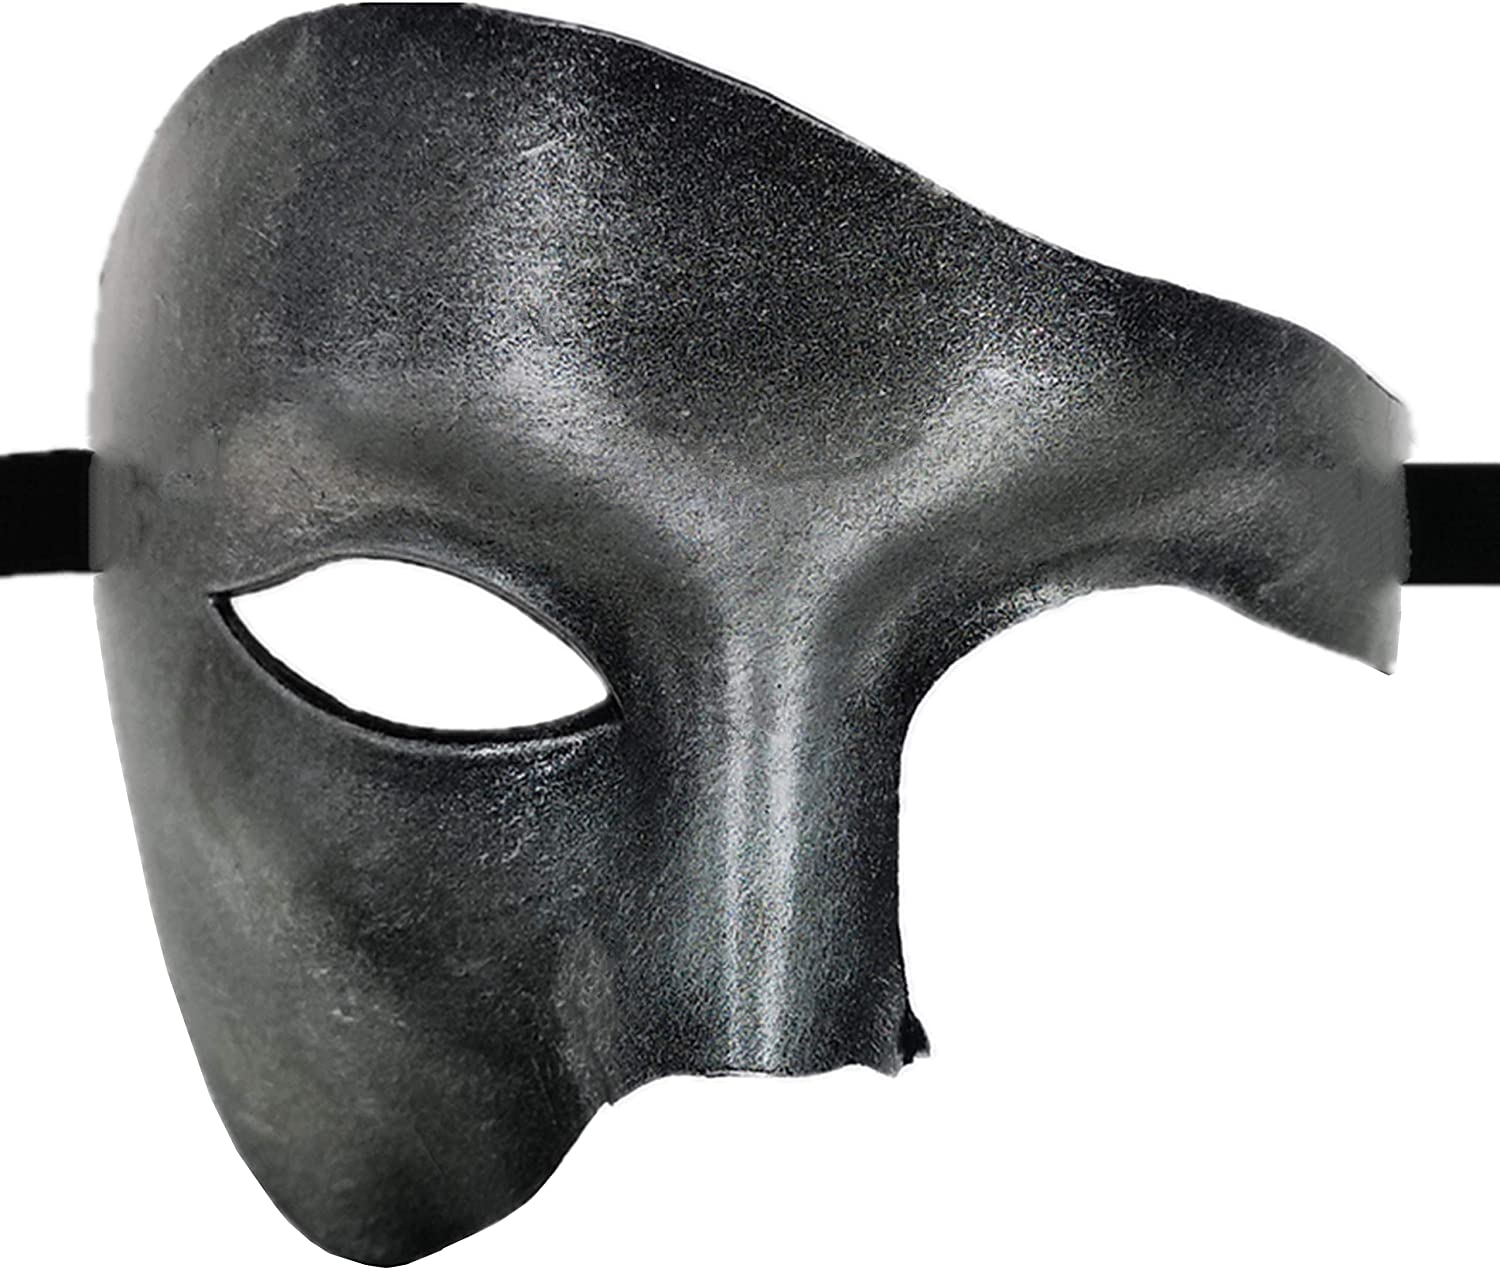 Masquerade Mask for Venetian Men Costume Mask/Party/Ball Prom/Halloween/Mardi Gras/Wedding(Silver One-Eyed)